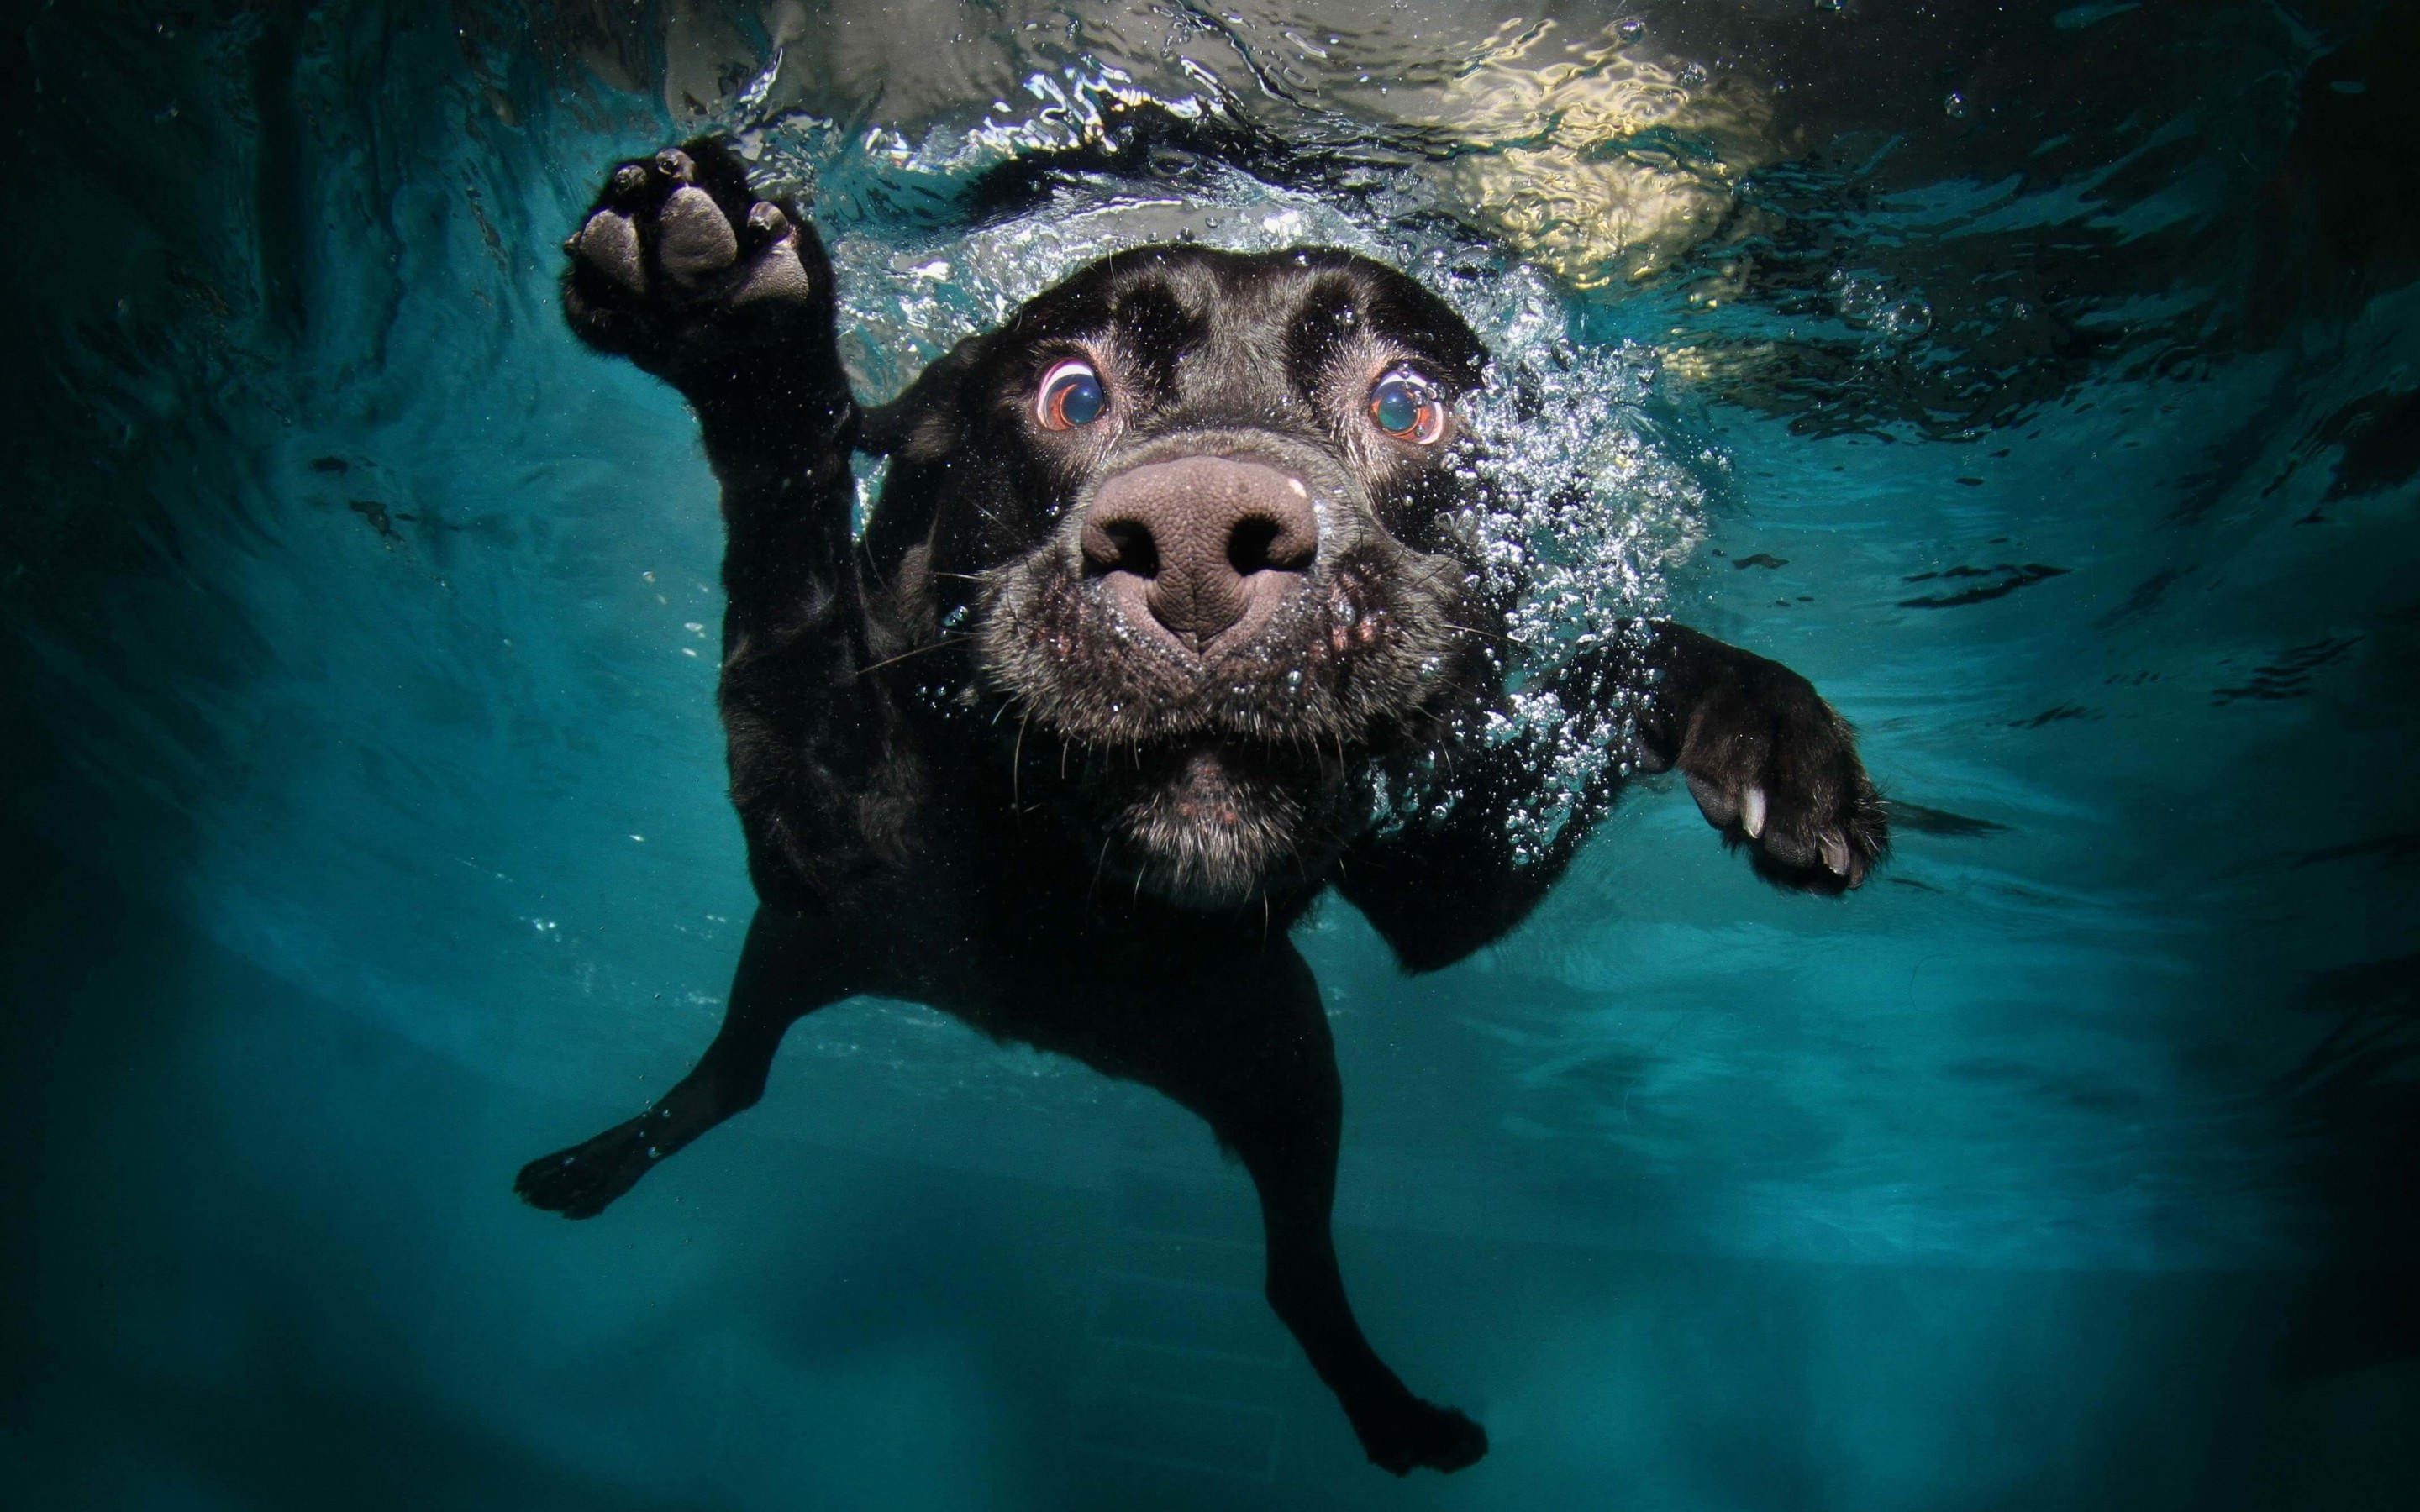 Underwater Dog Wallpaper for Desktop 2880x1800